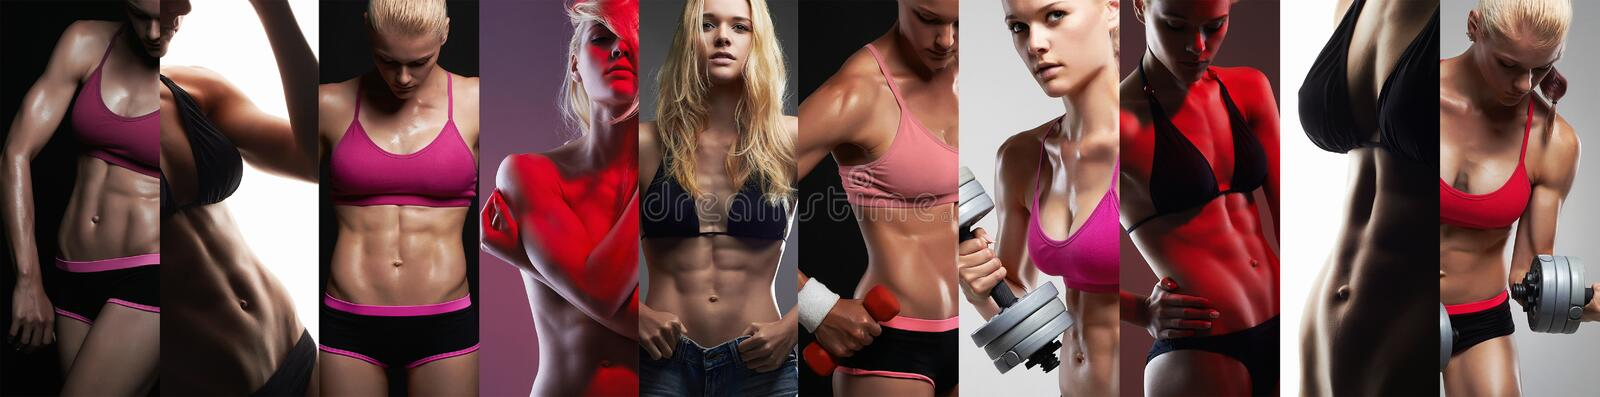 Collection de corps de sport femelles Filles musculaires de collage photo stock